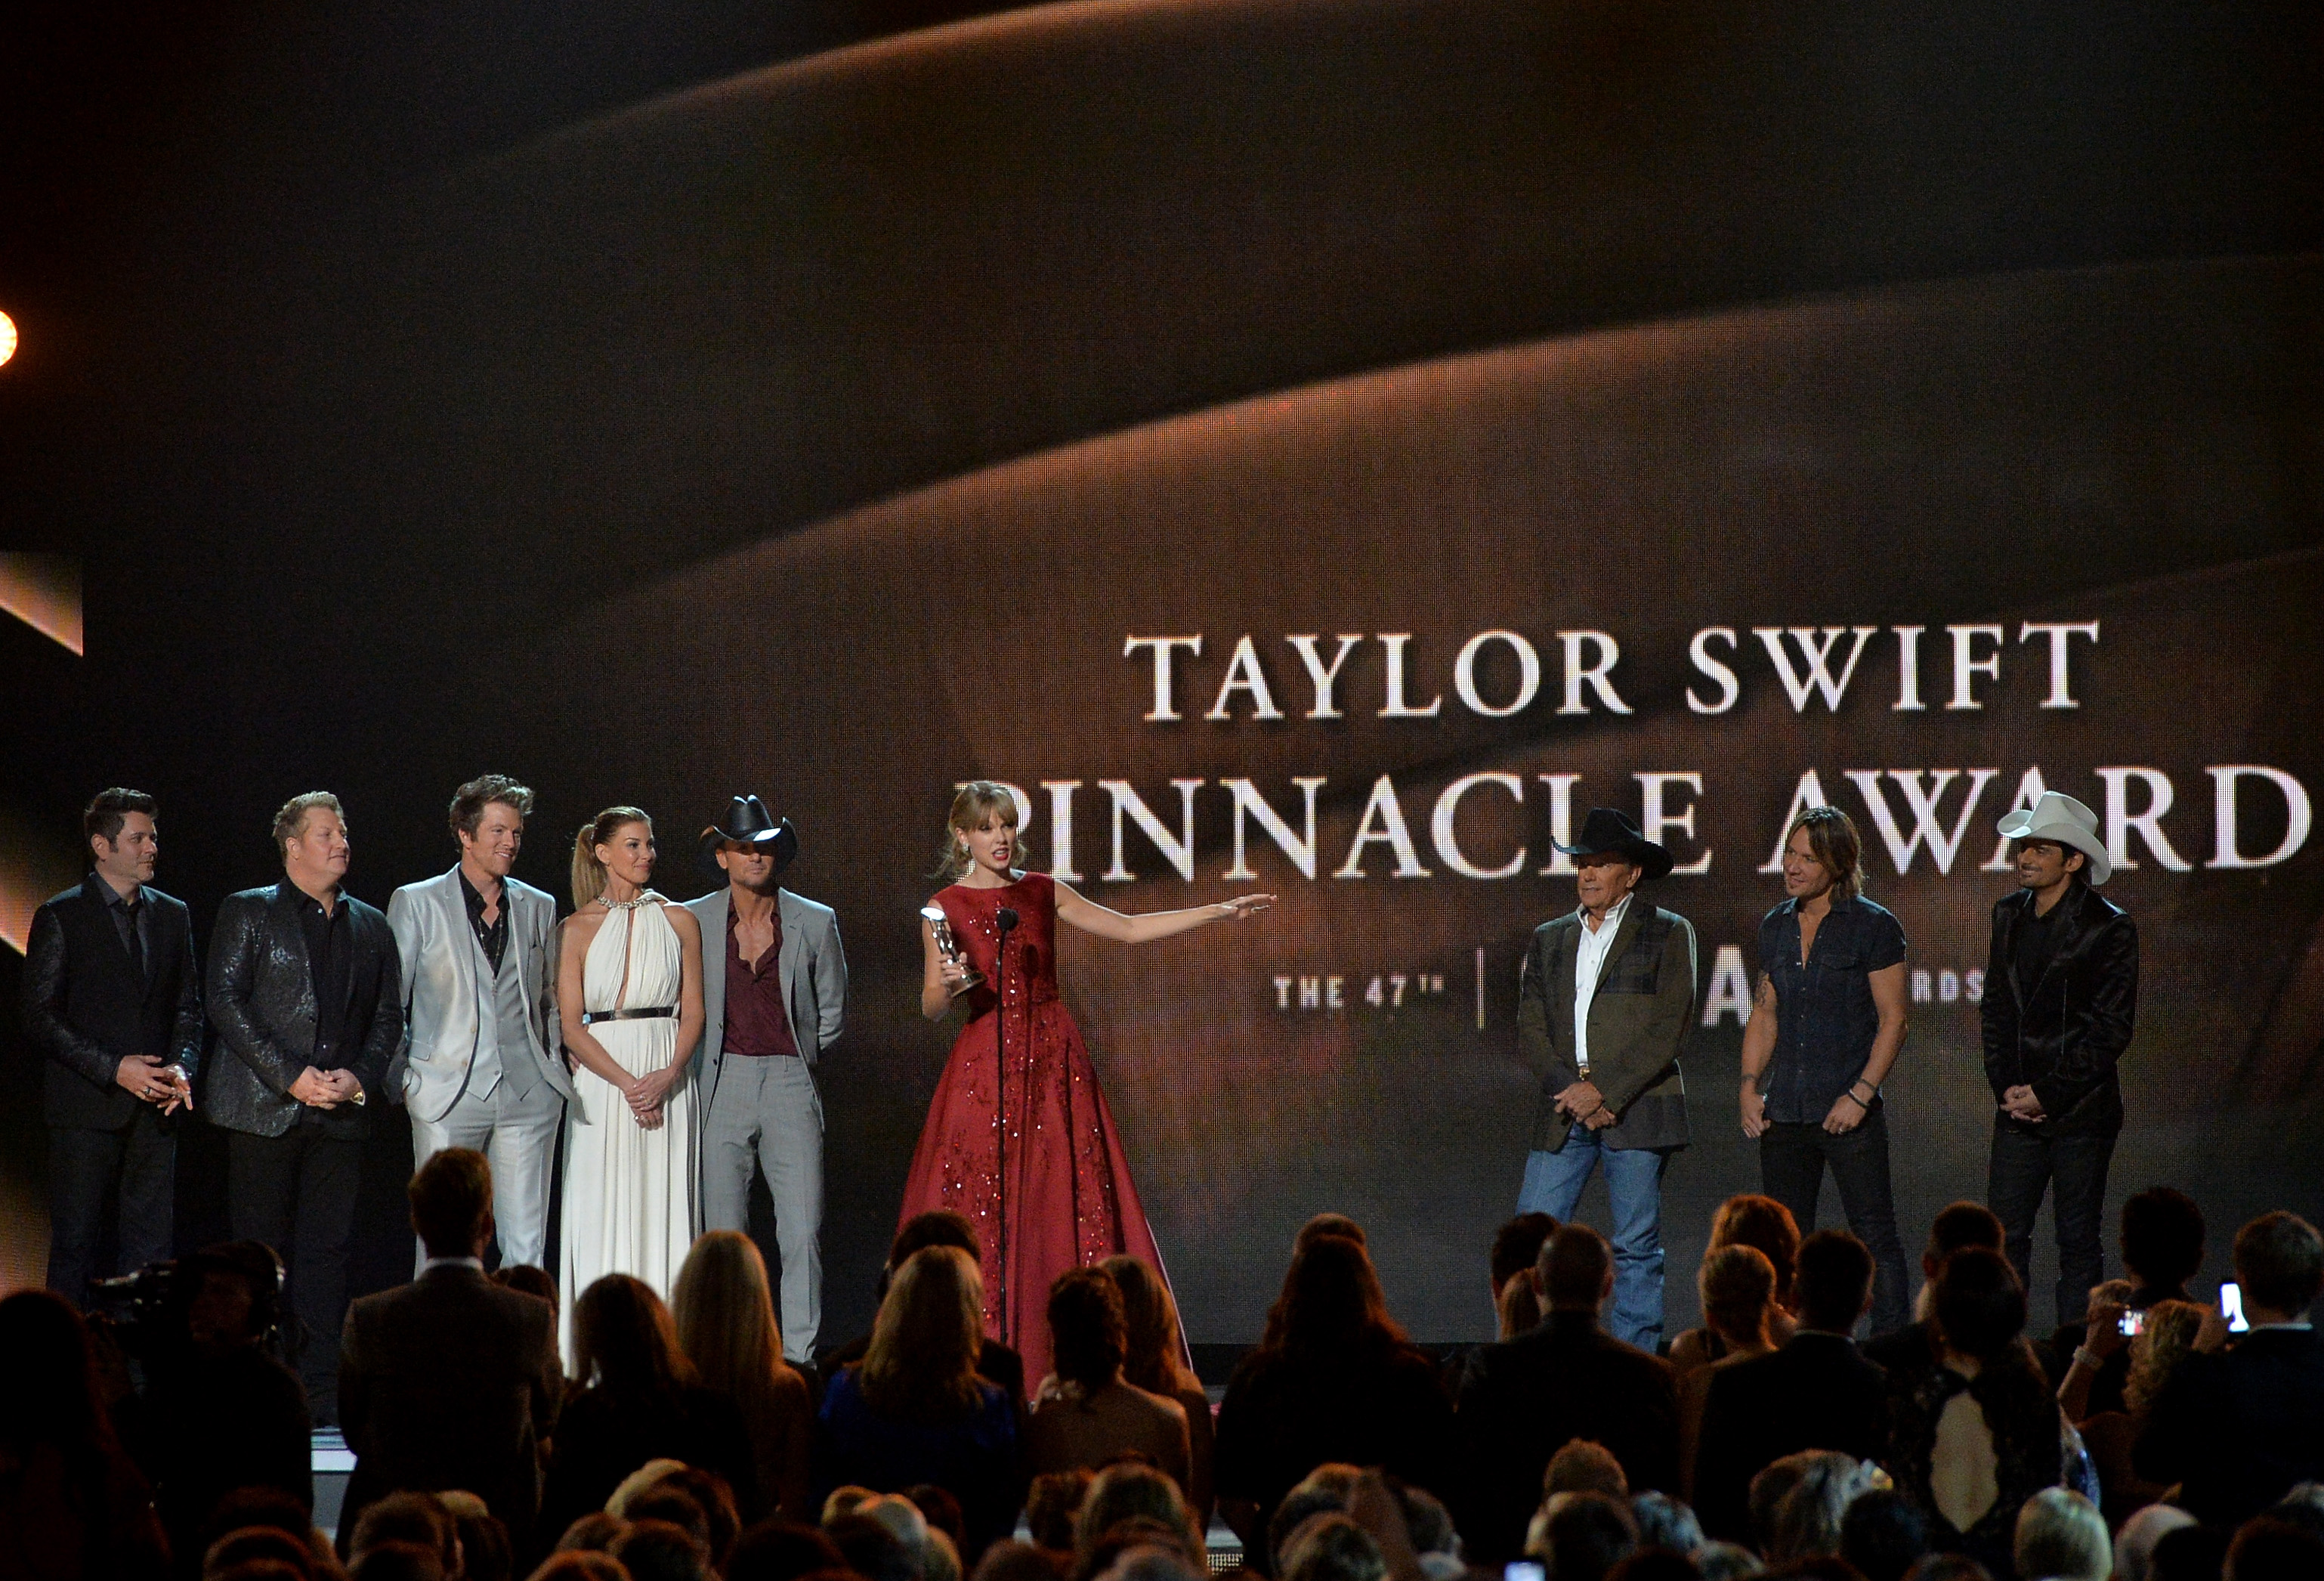 http://www.taylorpictures.net/albums/app/2013/cmaawards/028.jpg